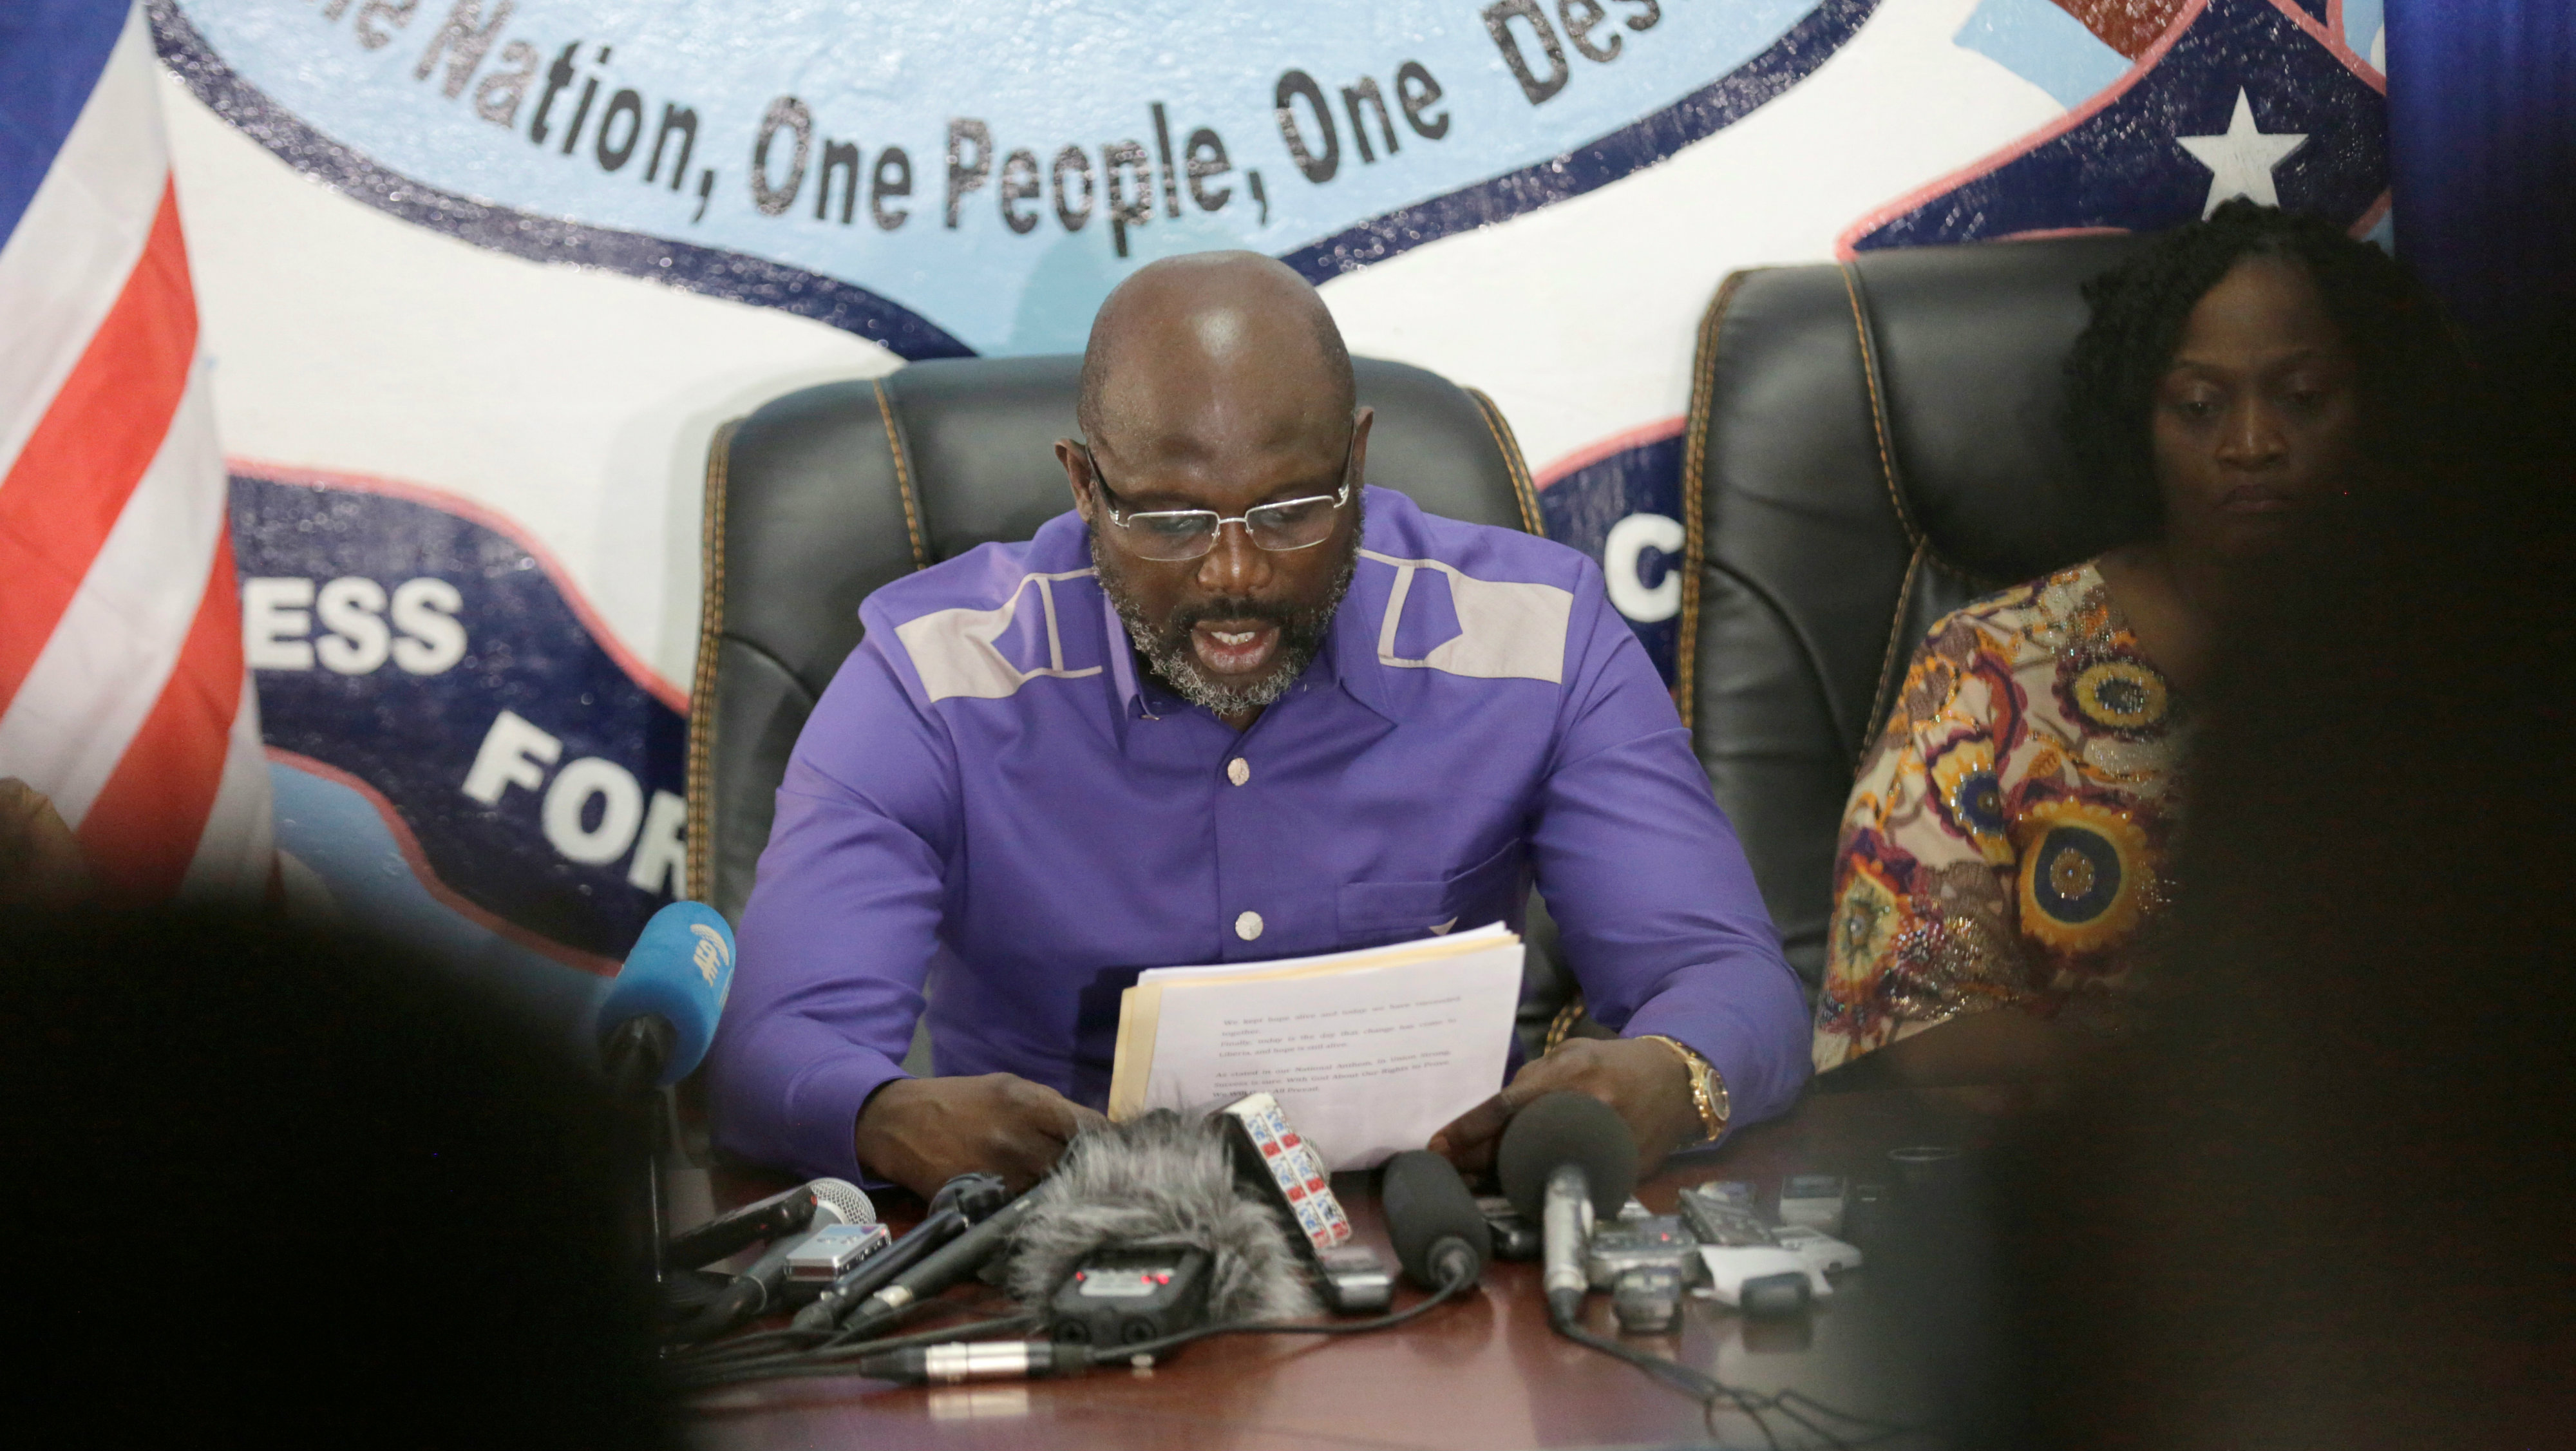 President-elect George Weah of Coalition for Democratic Change (CDC) attends a news conference at party headquarters, after the announcement of the presidential election results, in Monrovia, Liberia, December 30, 2017.